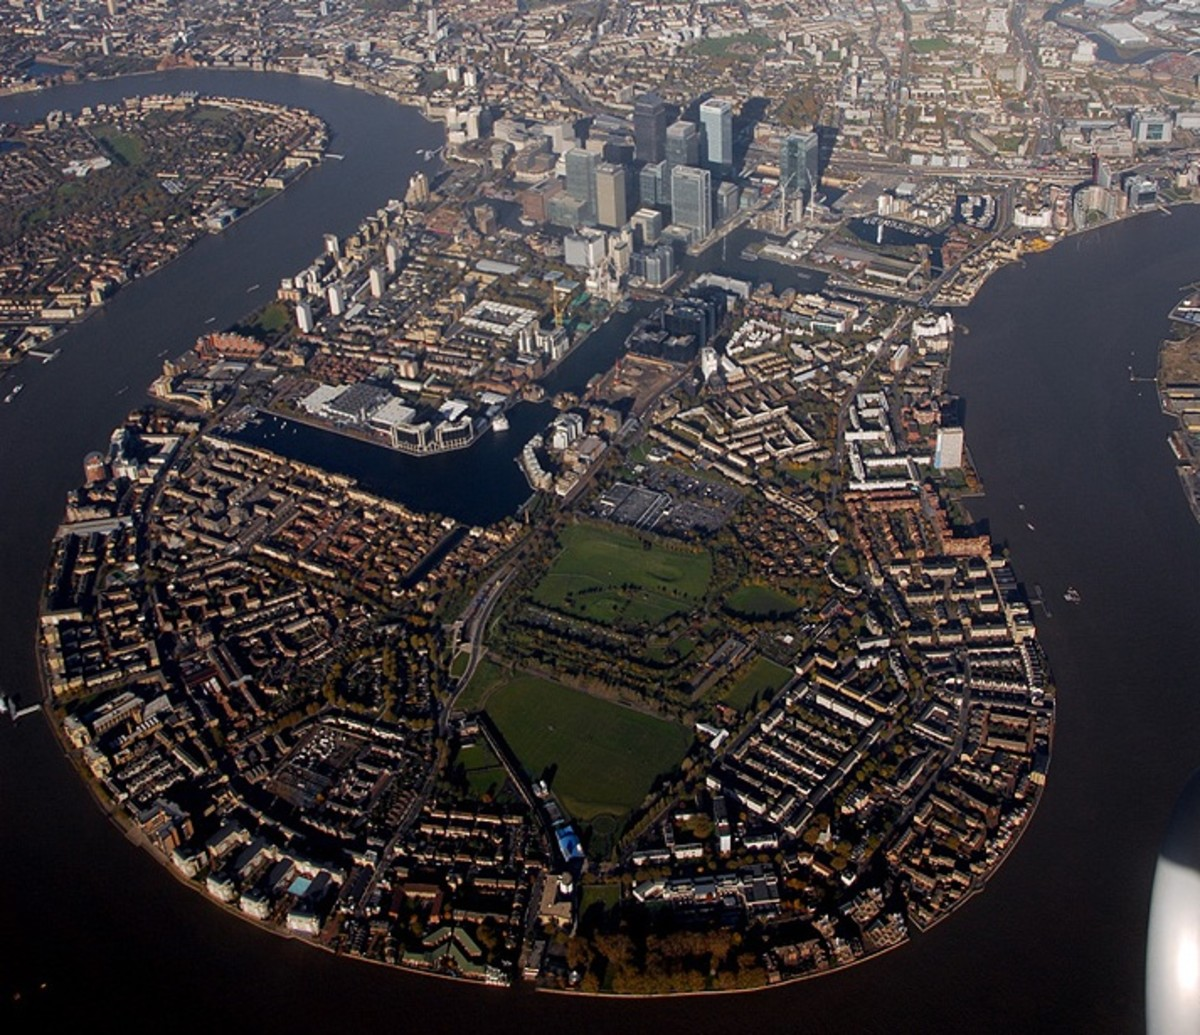 The Isle of Dogs in the 1980s-1990s also buzzed with construction projects as some City firms and newspapers moved out of the Fleet Street environs. We (The Telegraph) moved initially to South Quay in 1986, right next to the DLR halt, very convenient